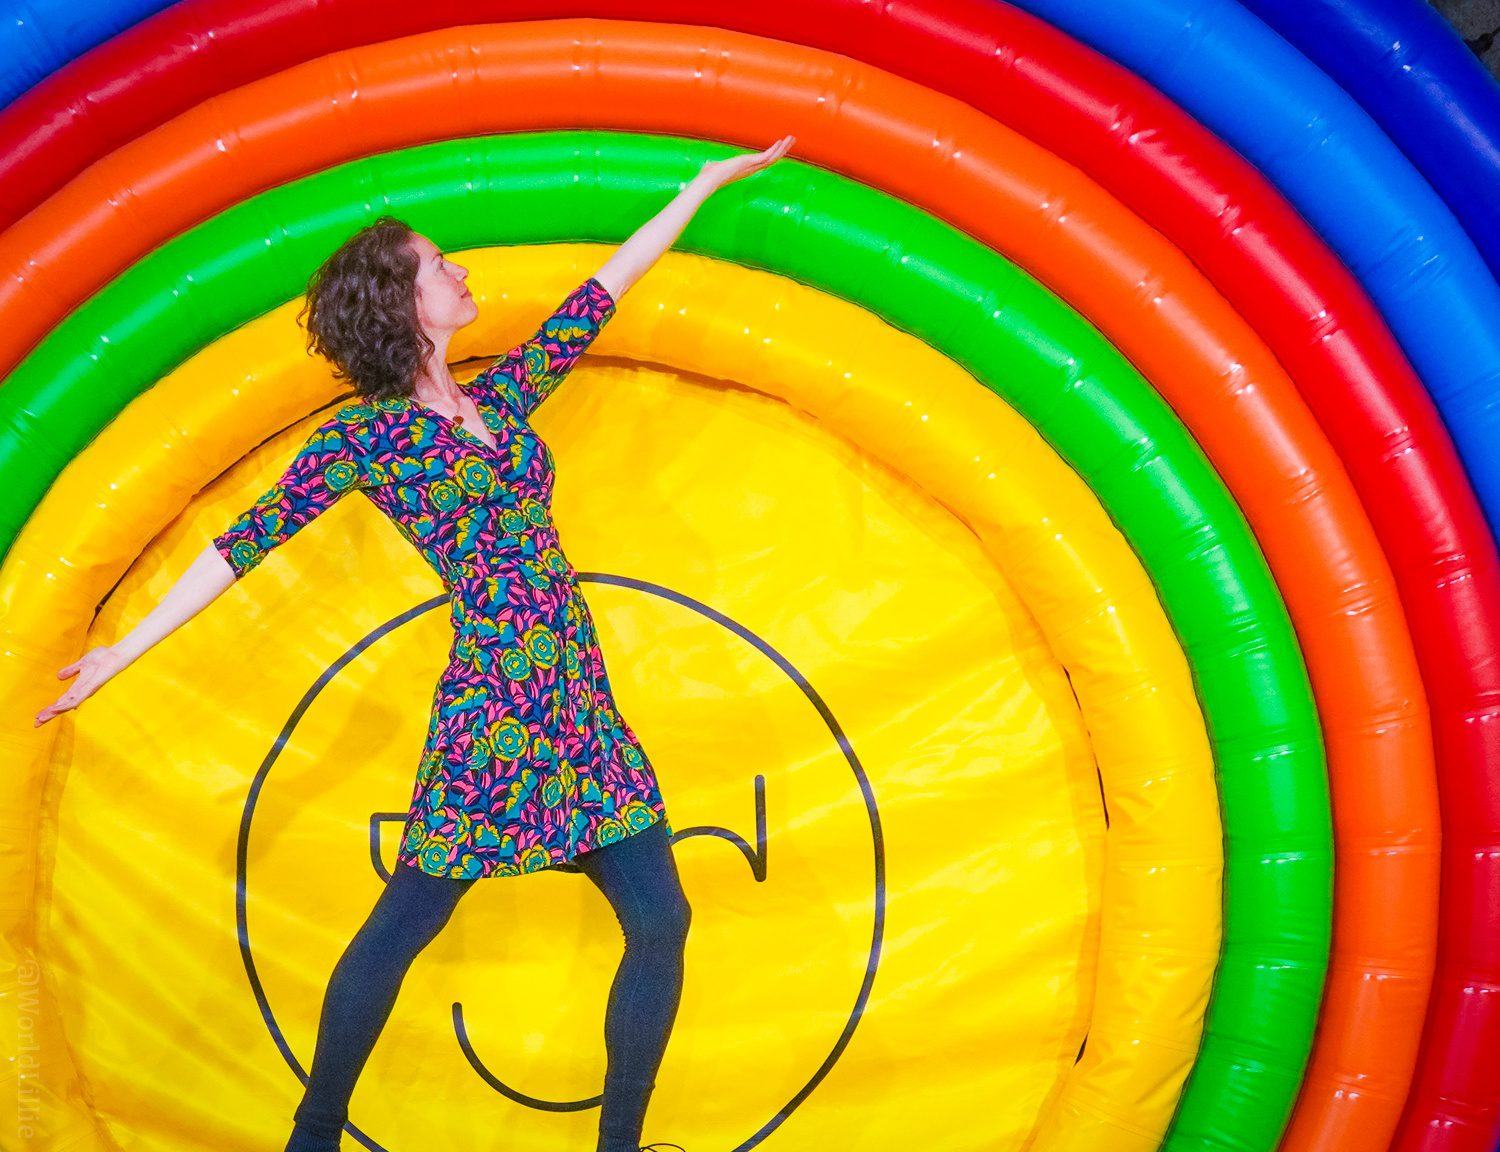 The iconic Happy Place bouncy rainbow.